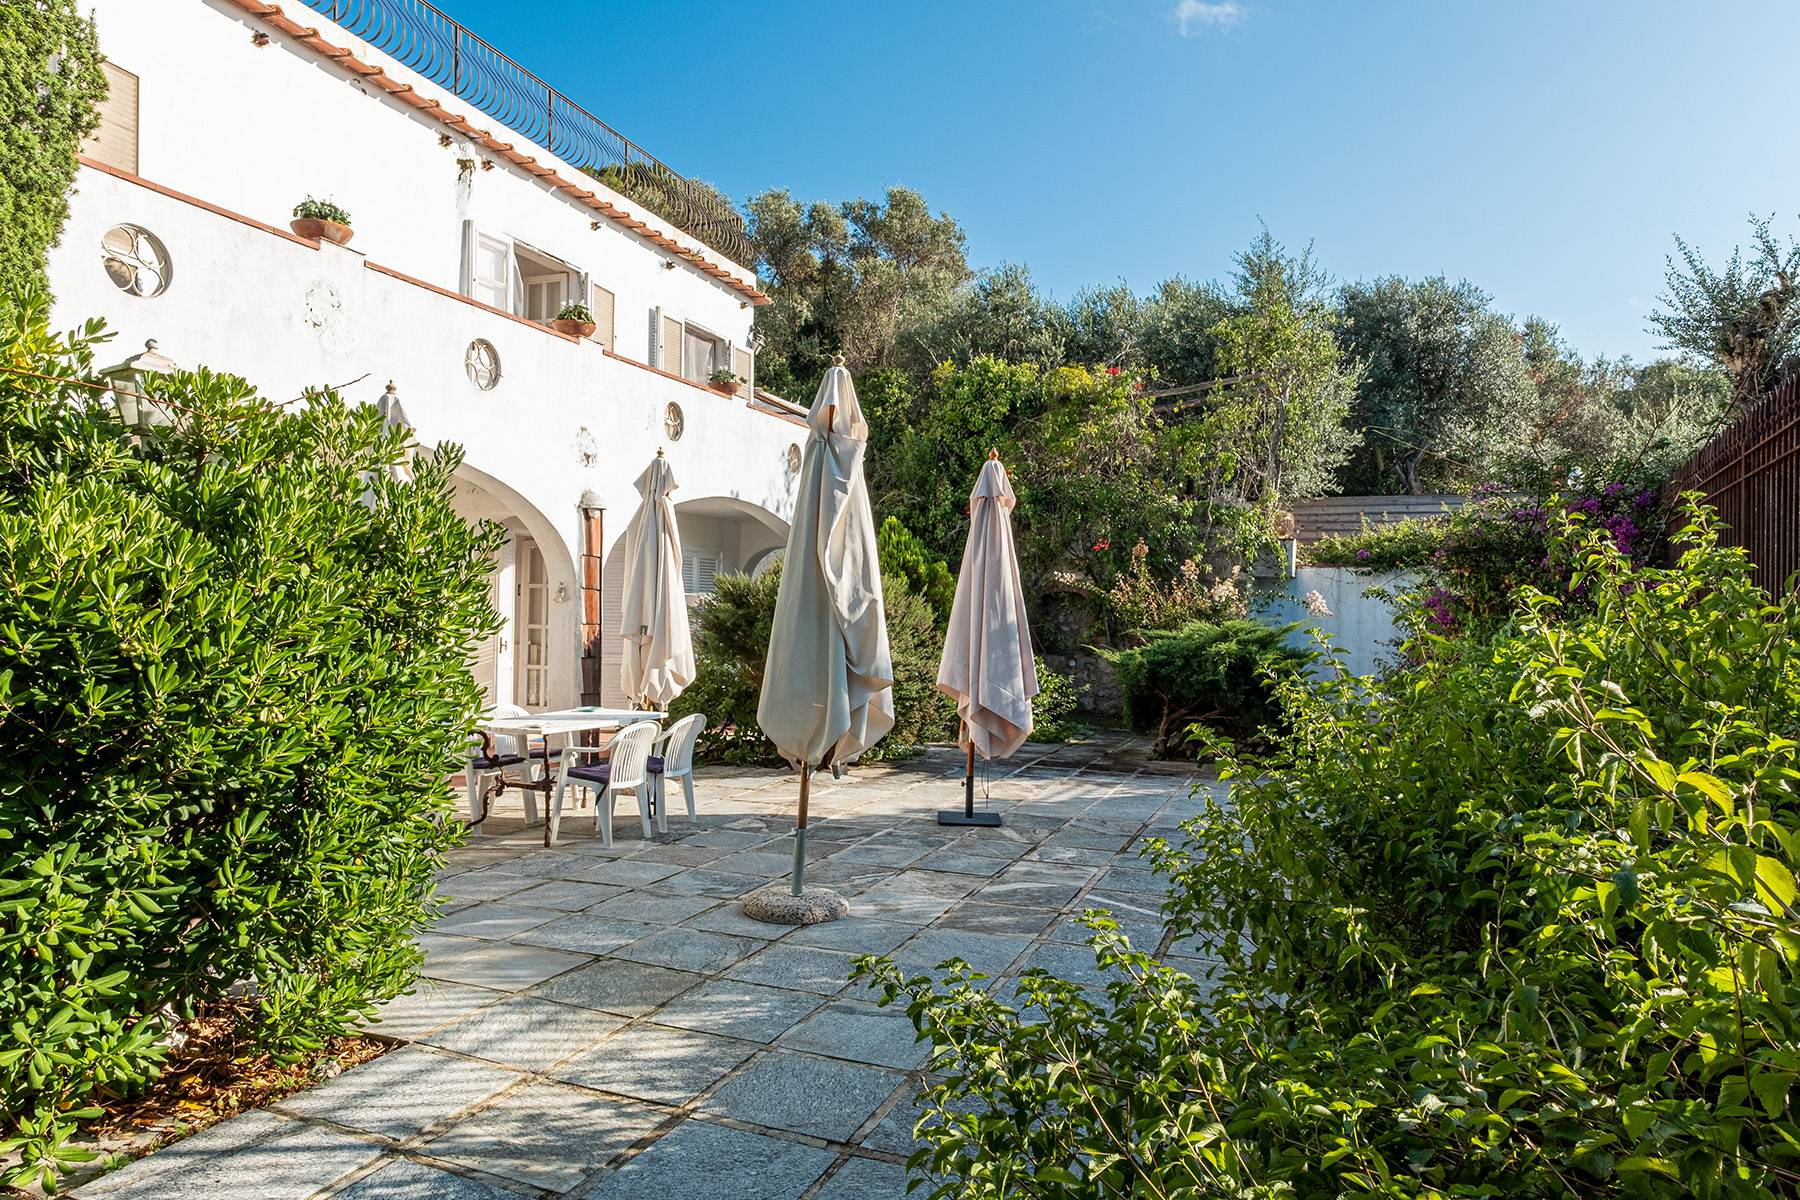 Charming villa with olive grove and swimming pool overlooking the sea - 5